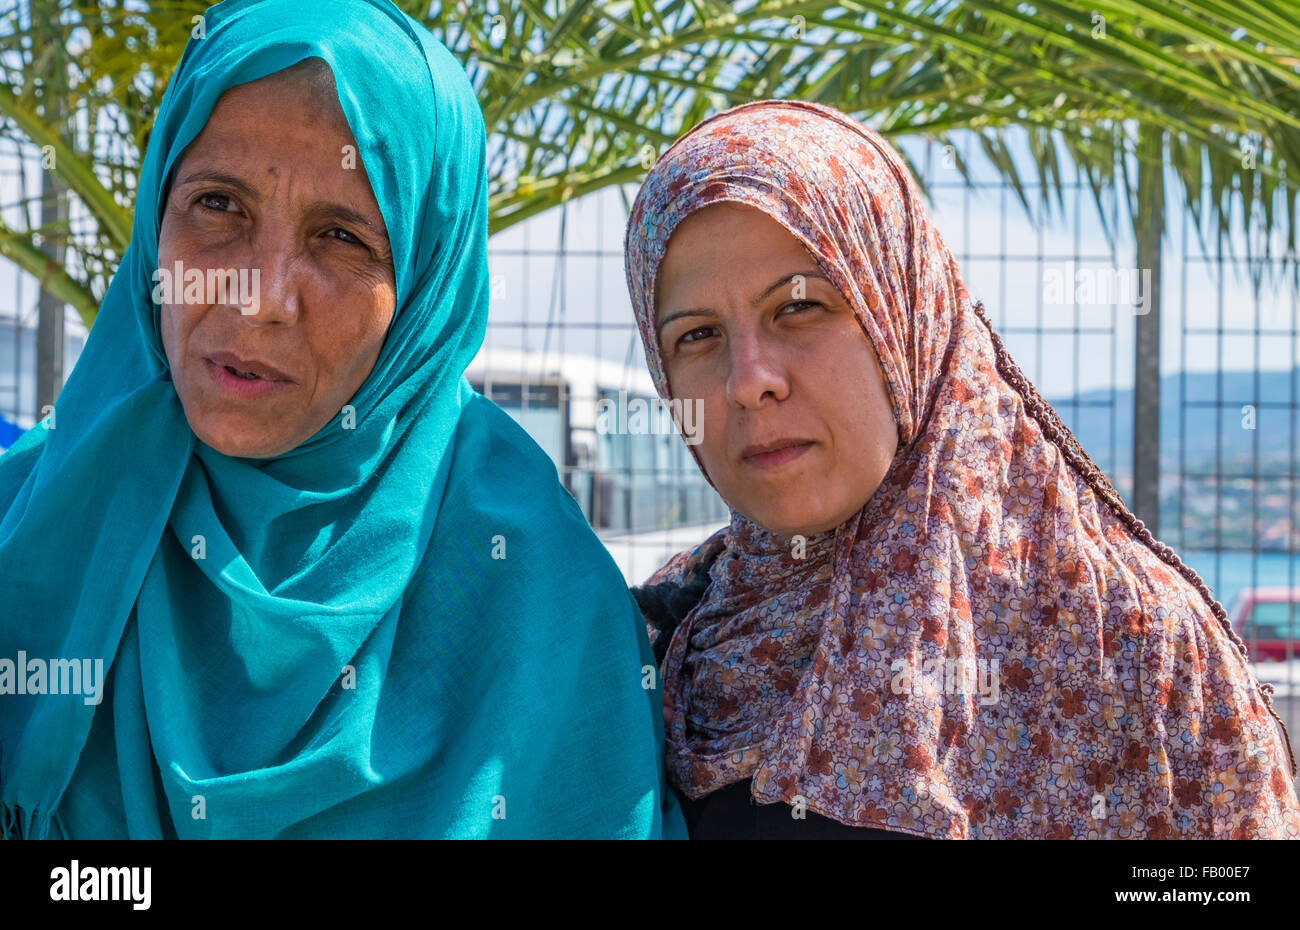 Two Syrian refugee women in traditional hijabs arrive in the port city of Mytillene, Lesvos after crossing from - Stock Image